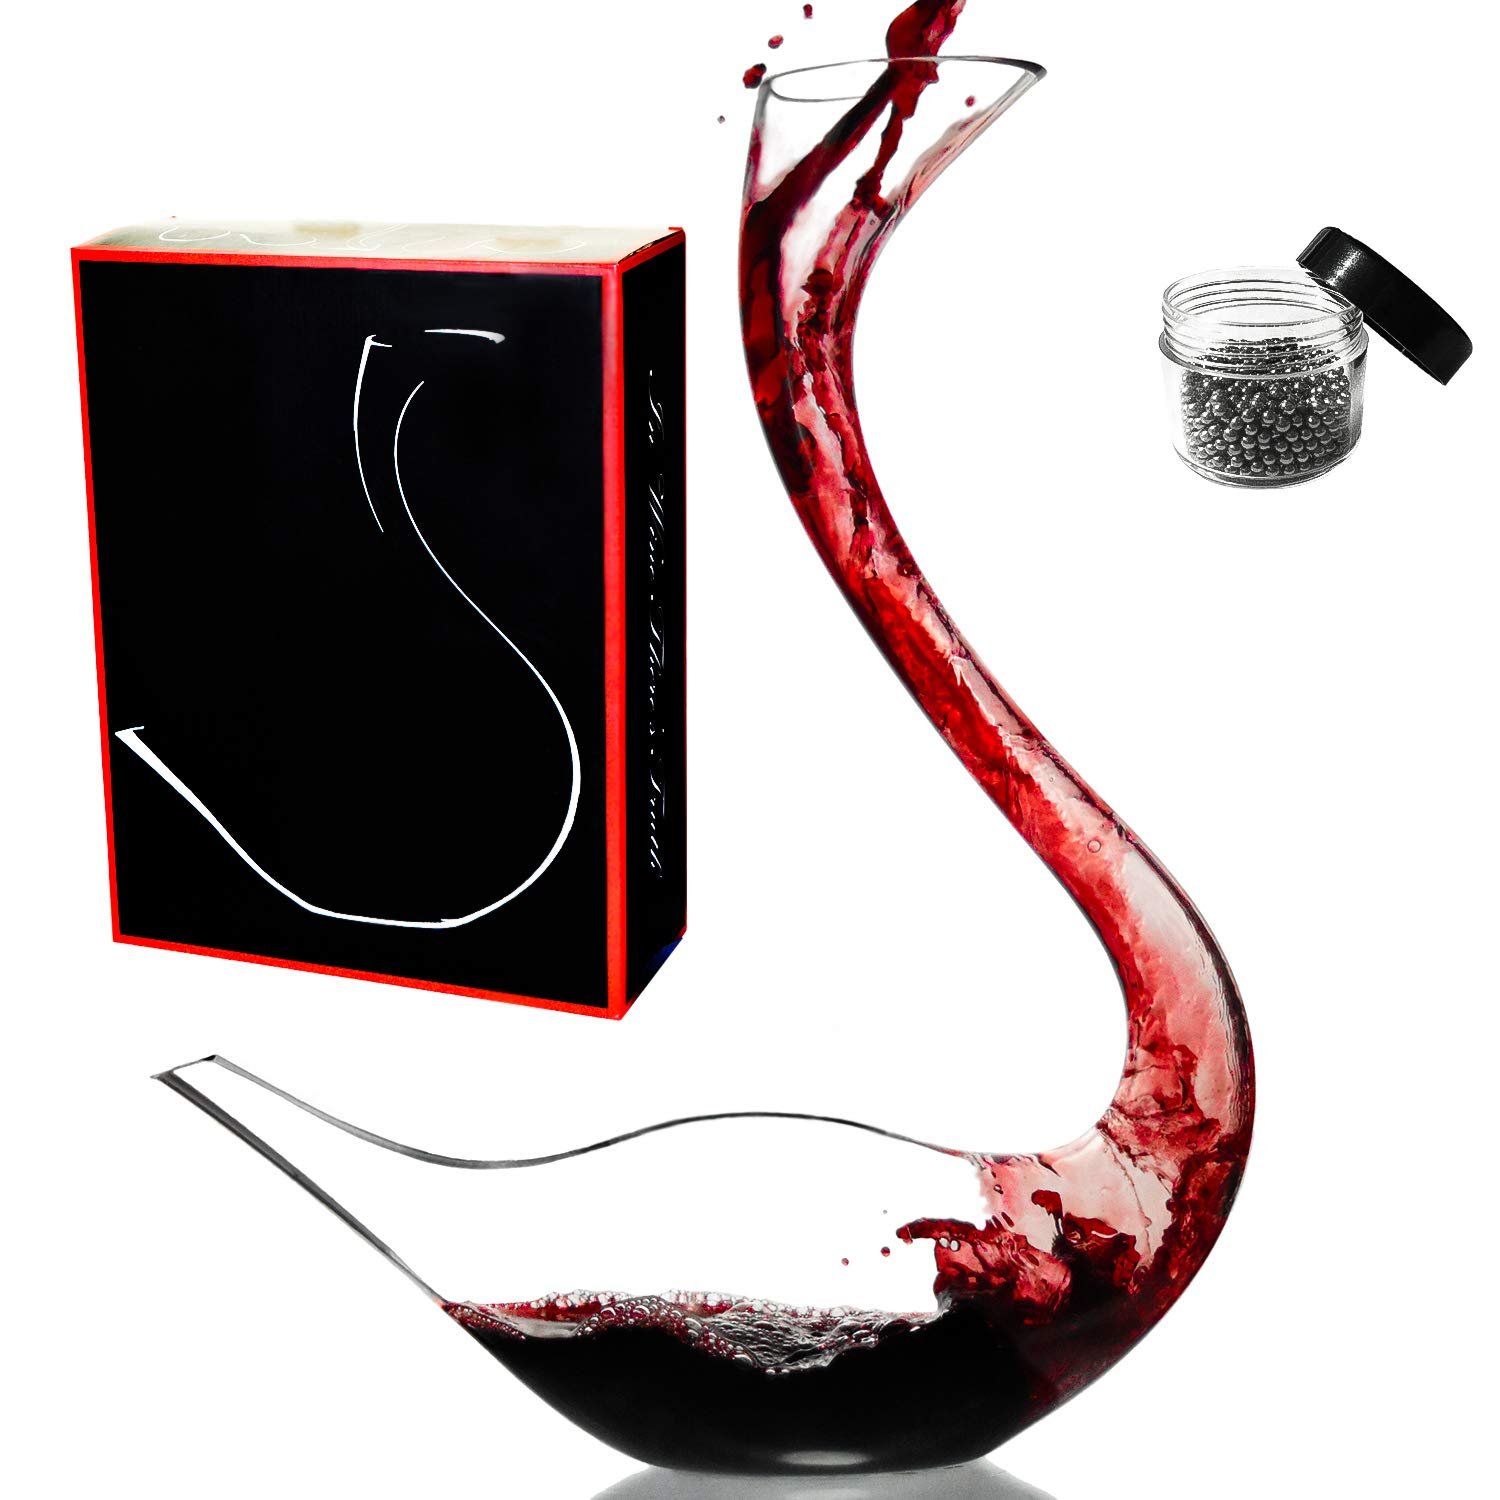 Le Sens Amazing Home Cygnus Wine Decanter 100% Hand Blown Lead-Free Crystal Glass Swan Decanter, Prepackaged Red Wine Carafe, Wine Gift, Wine Accessories,Gift Box Wrapped and Free Cleaning Beads Set by Le Sens Amazing Home